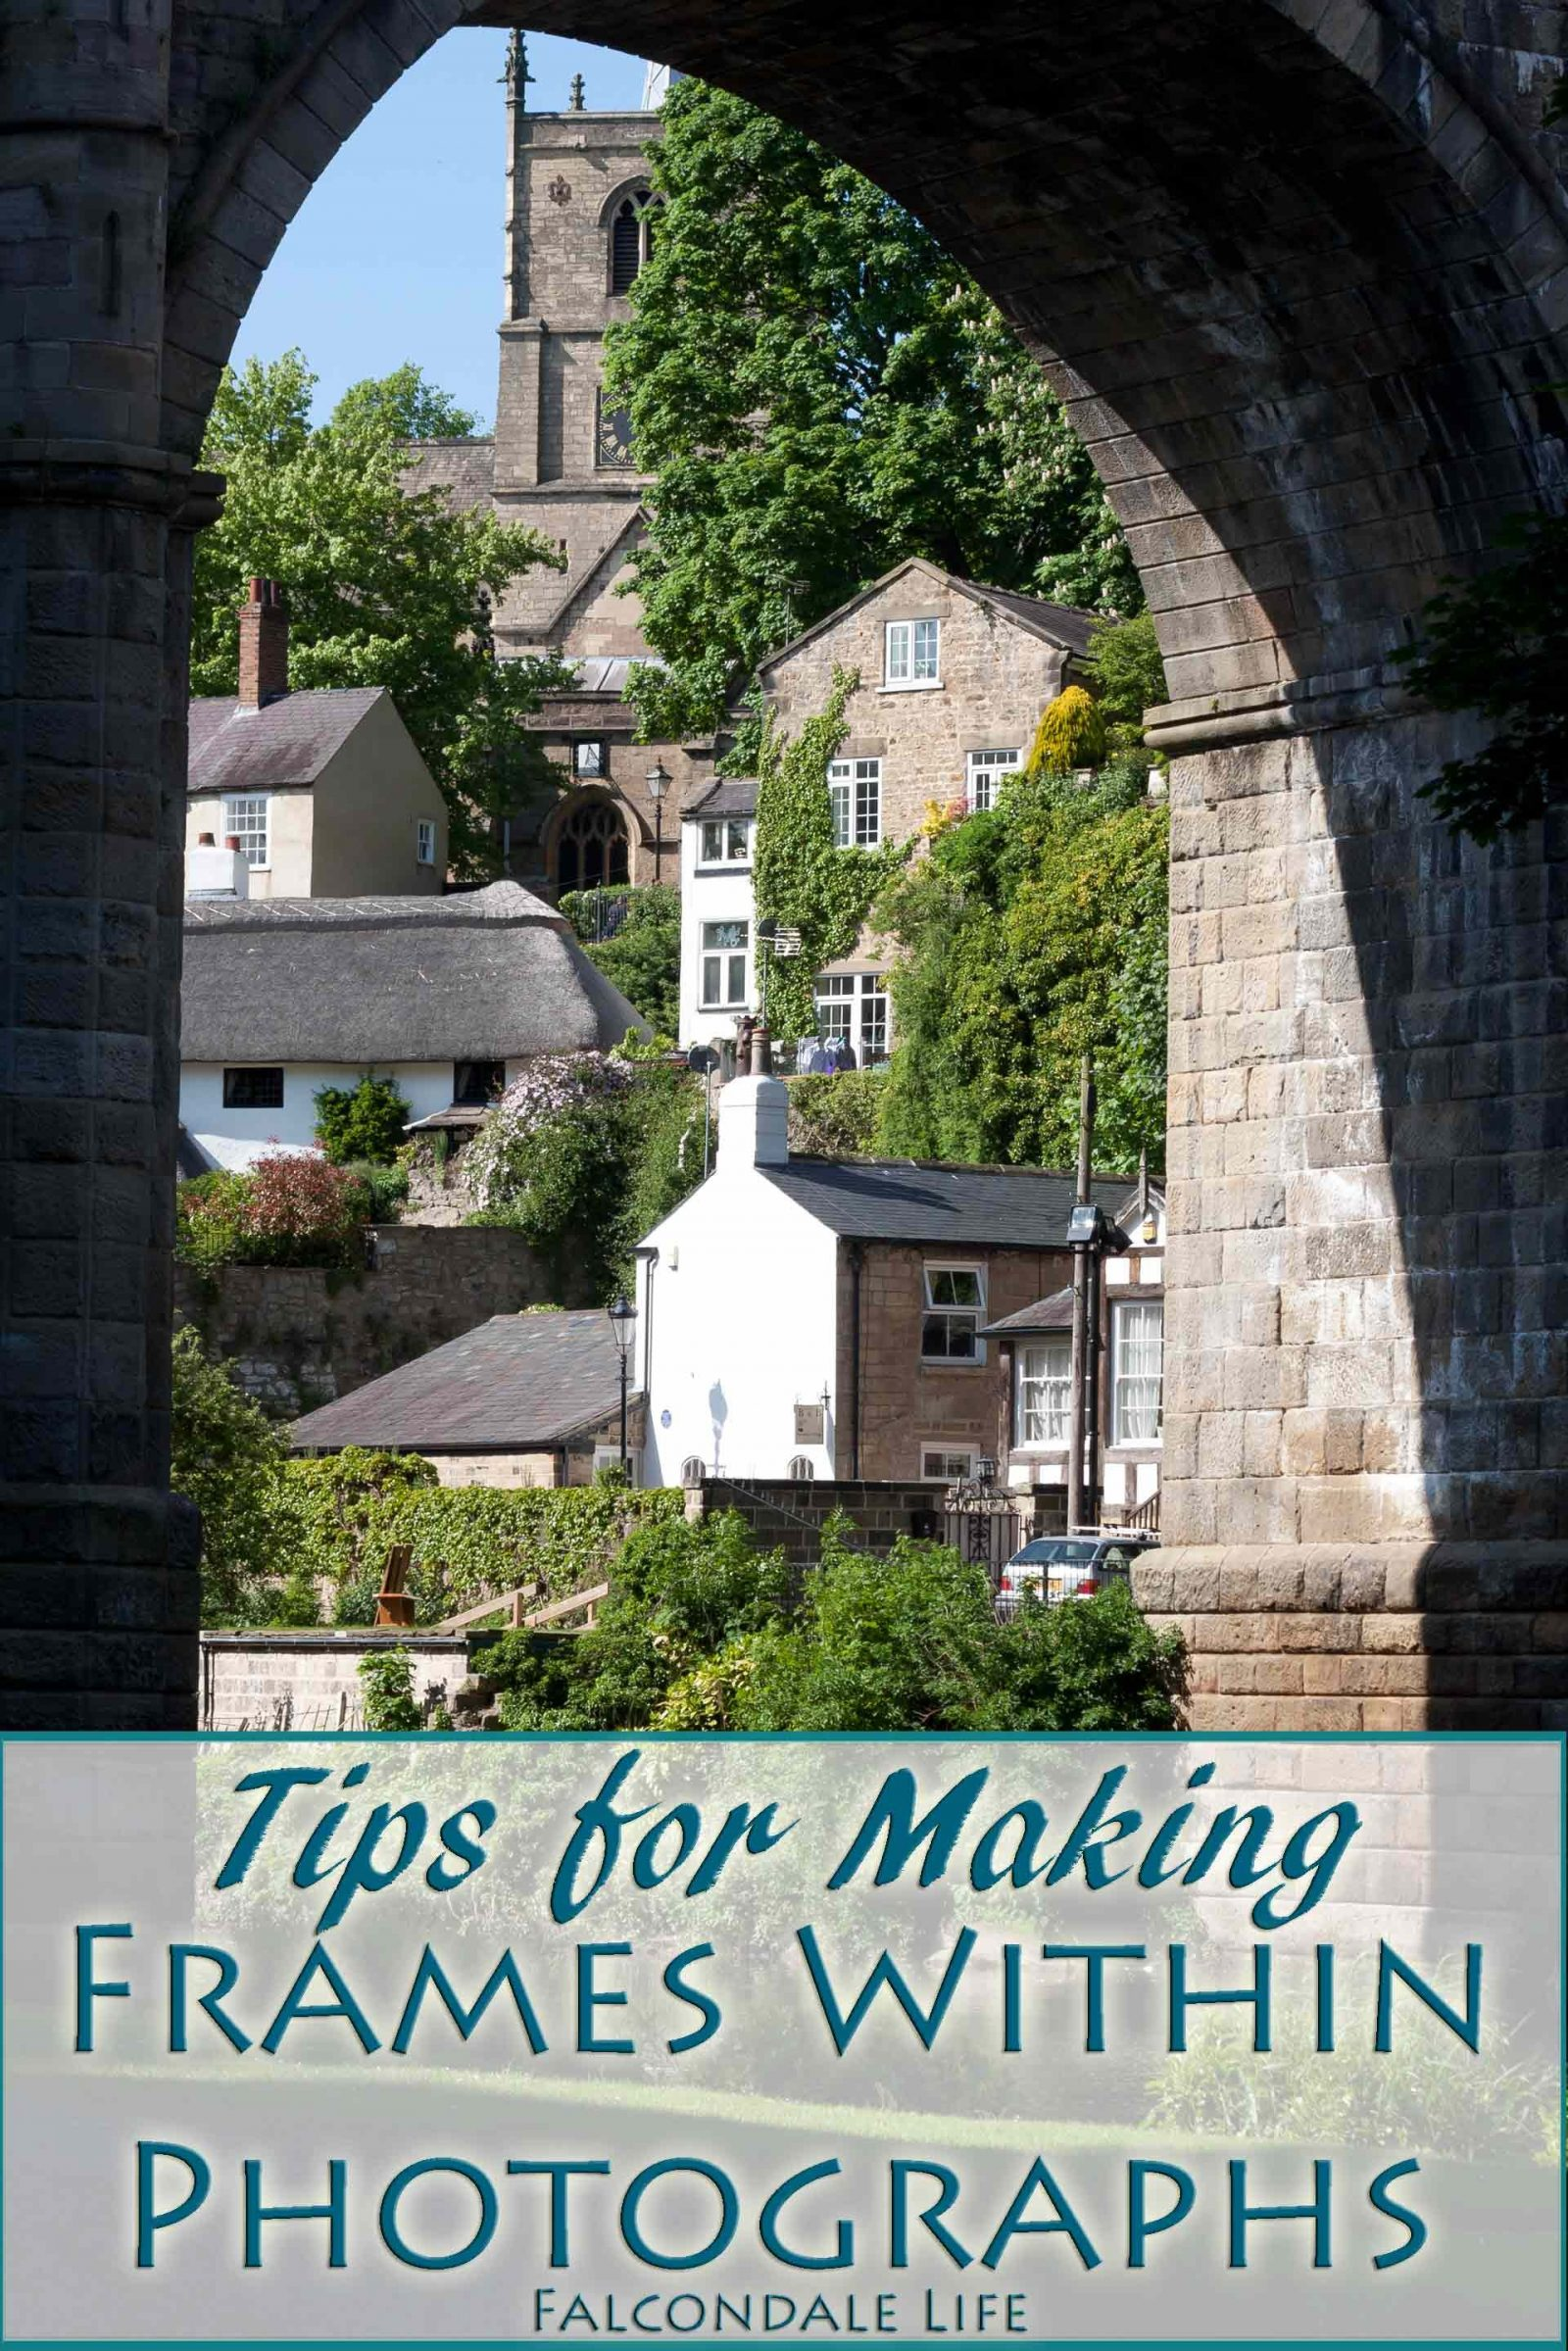 Tips for Making Frames Within Photographs